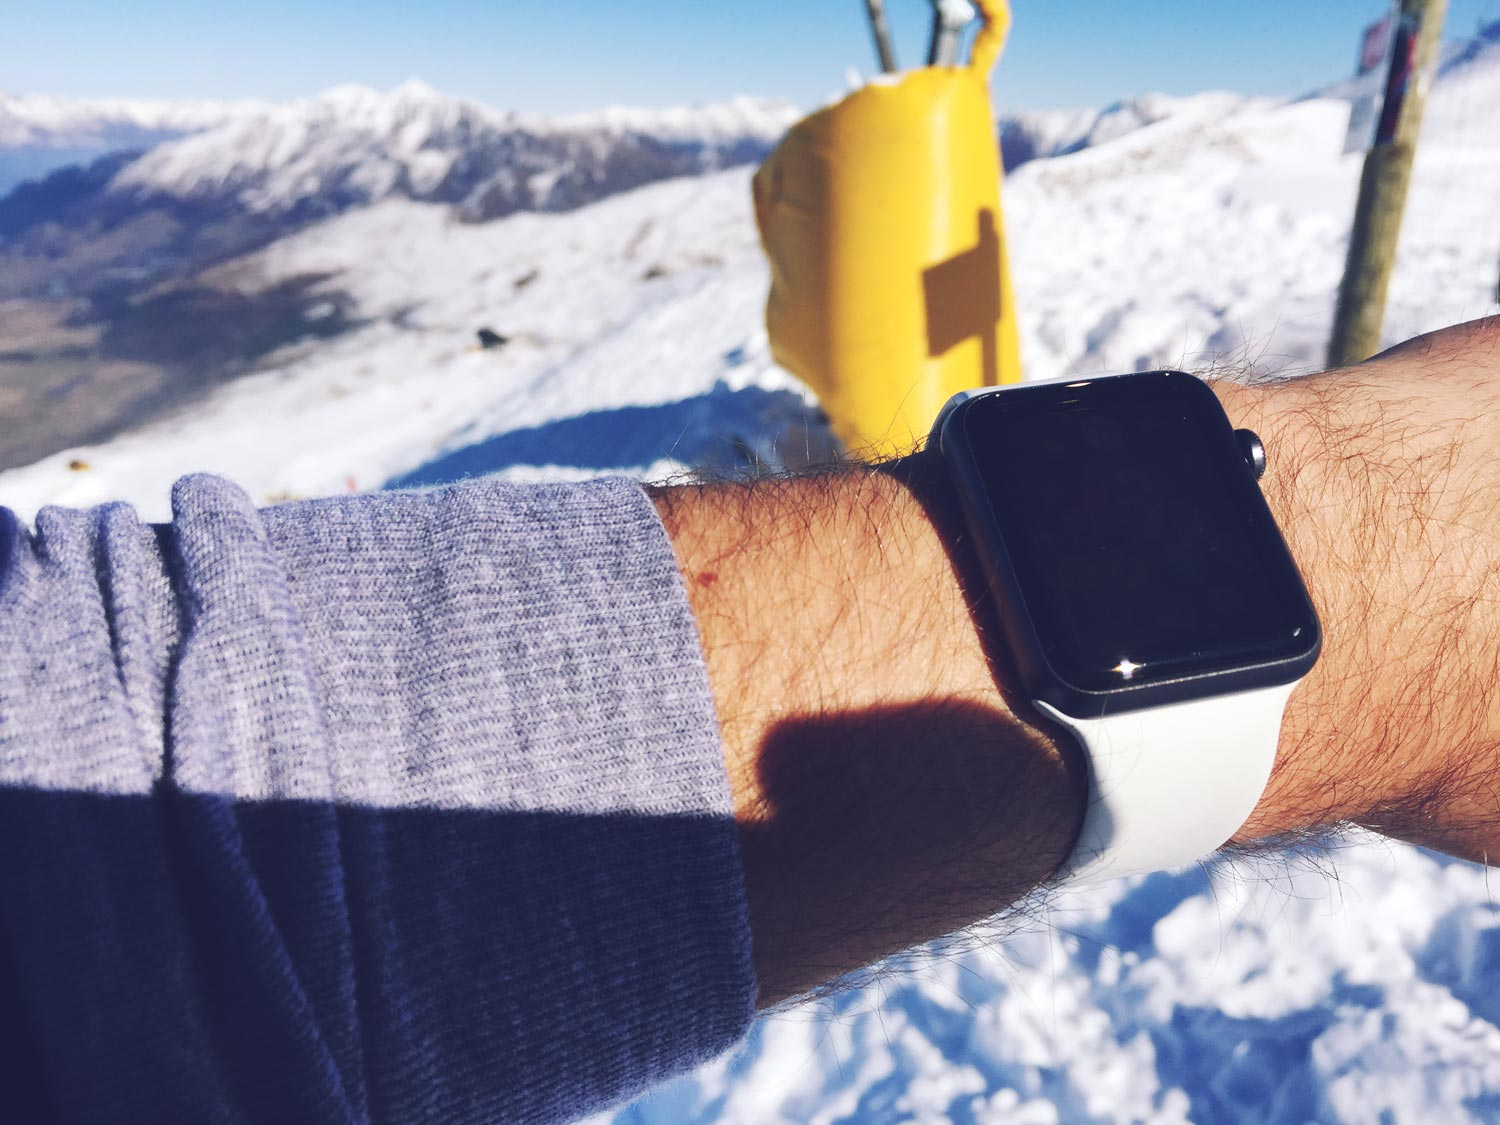 apple, watch, skiing, snowboarding, data, tech, apps